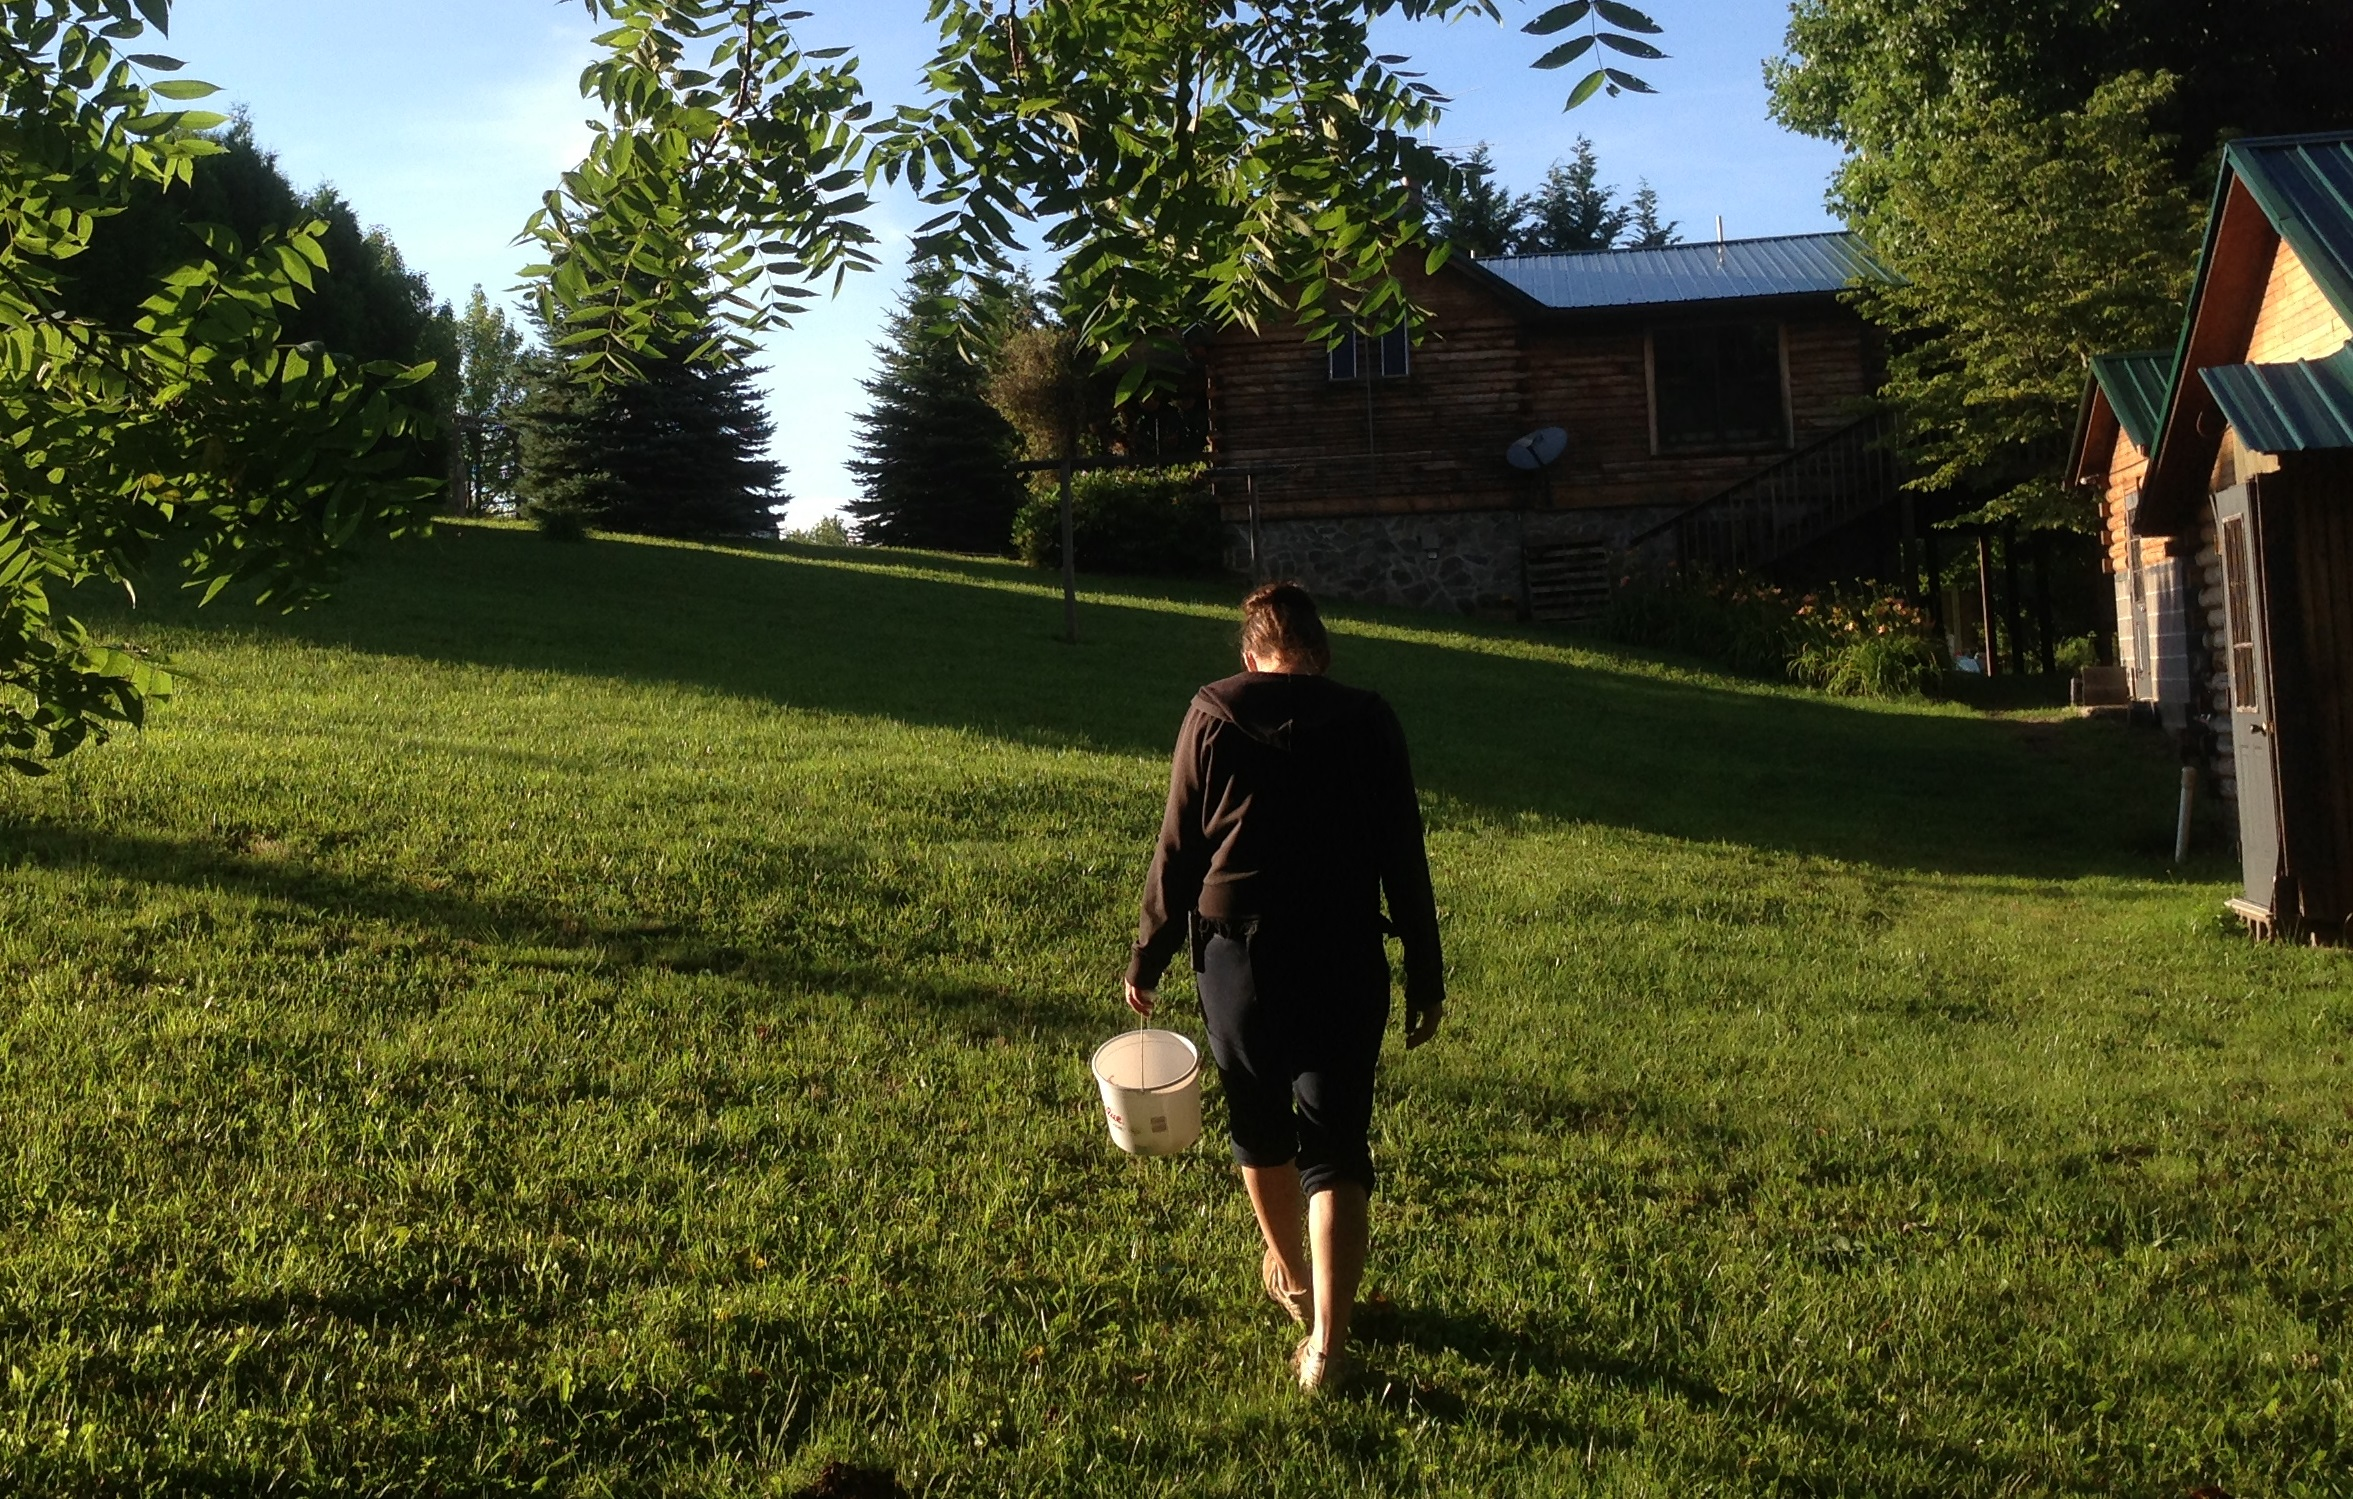 I get tired walking up the hill a few times when picking berries. I can only imagine having to haul water regularly.